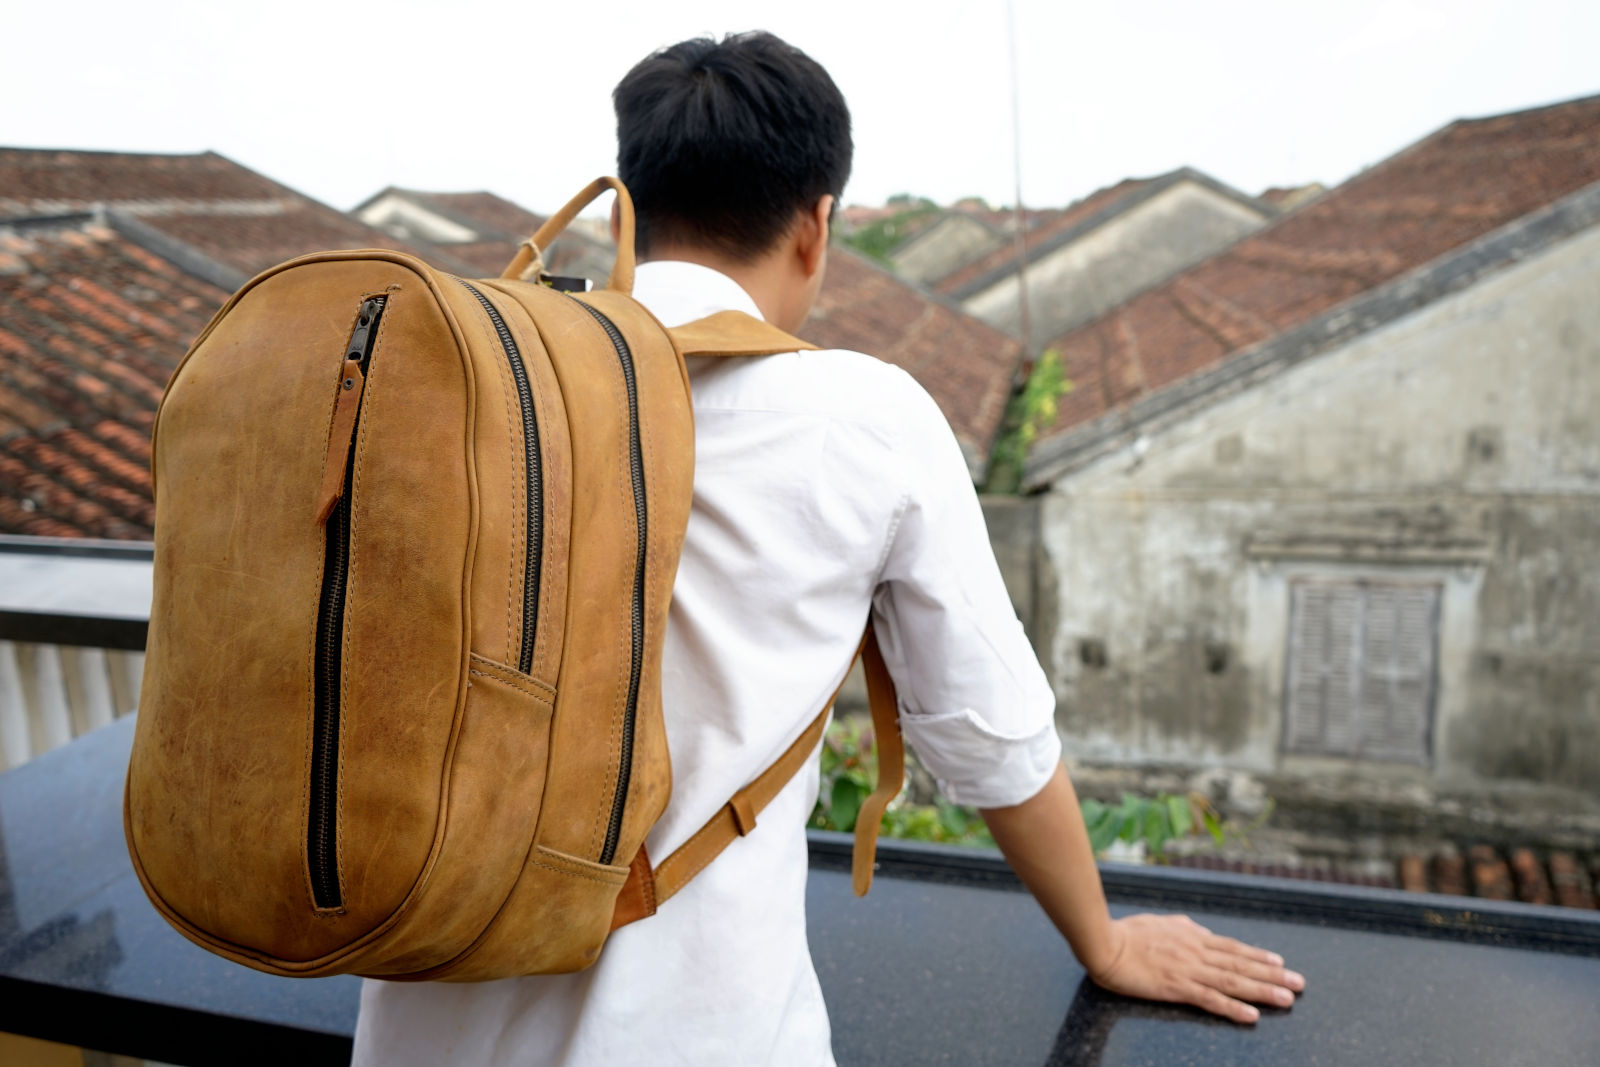 Hoi An Real Leather - Da Bao Real Leather: Big Suede Leather Backpack for weekend trips for work